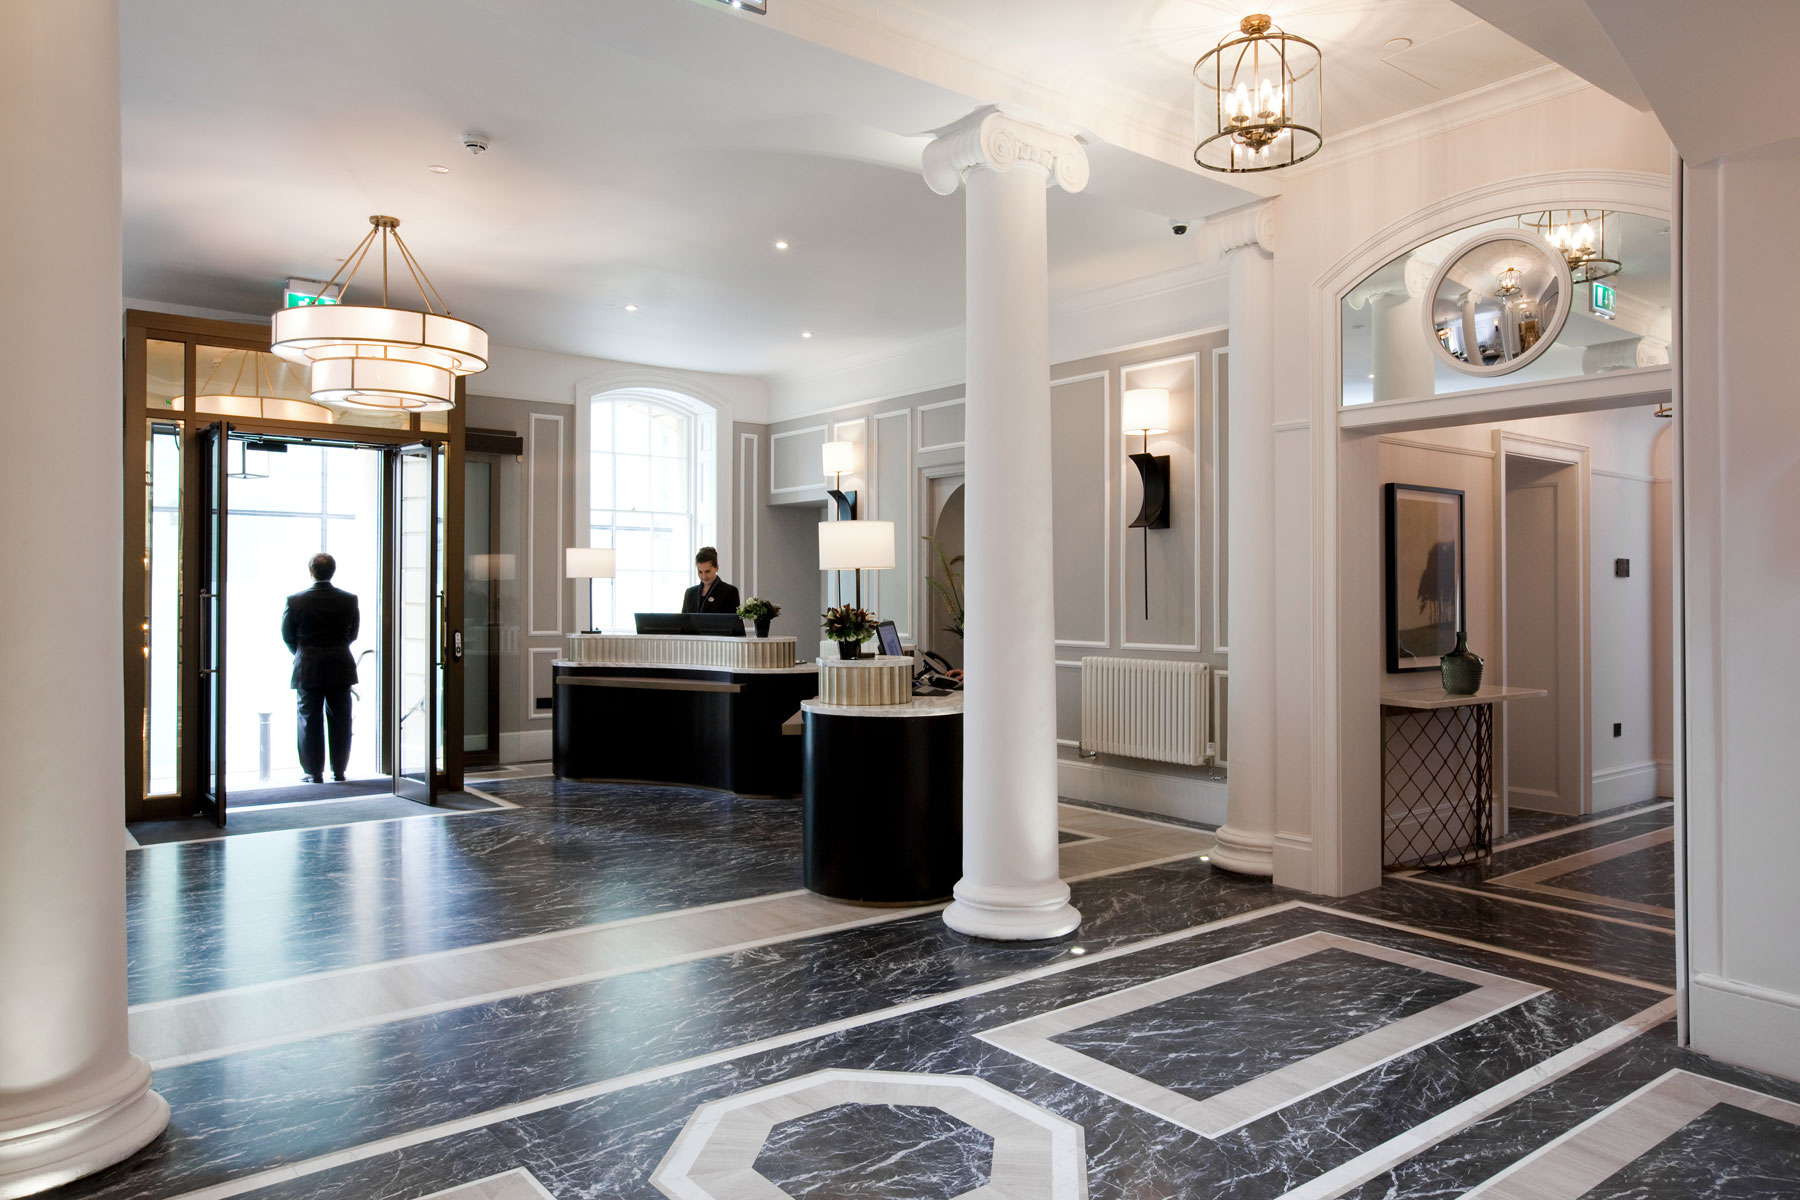 Healing Through Water At The Gainsborough Hotel & The New Wellness Suite 5